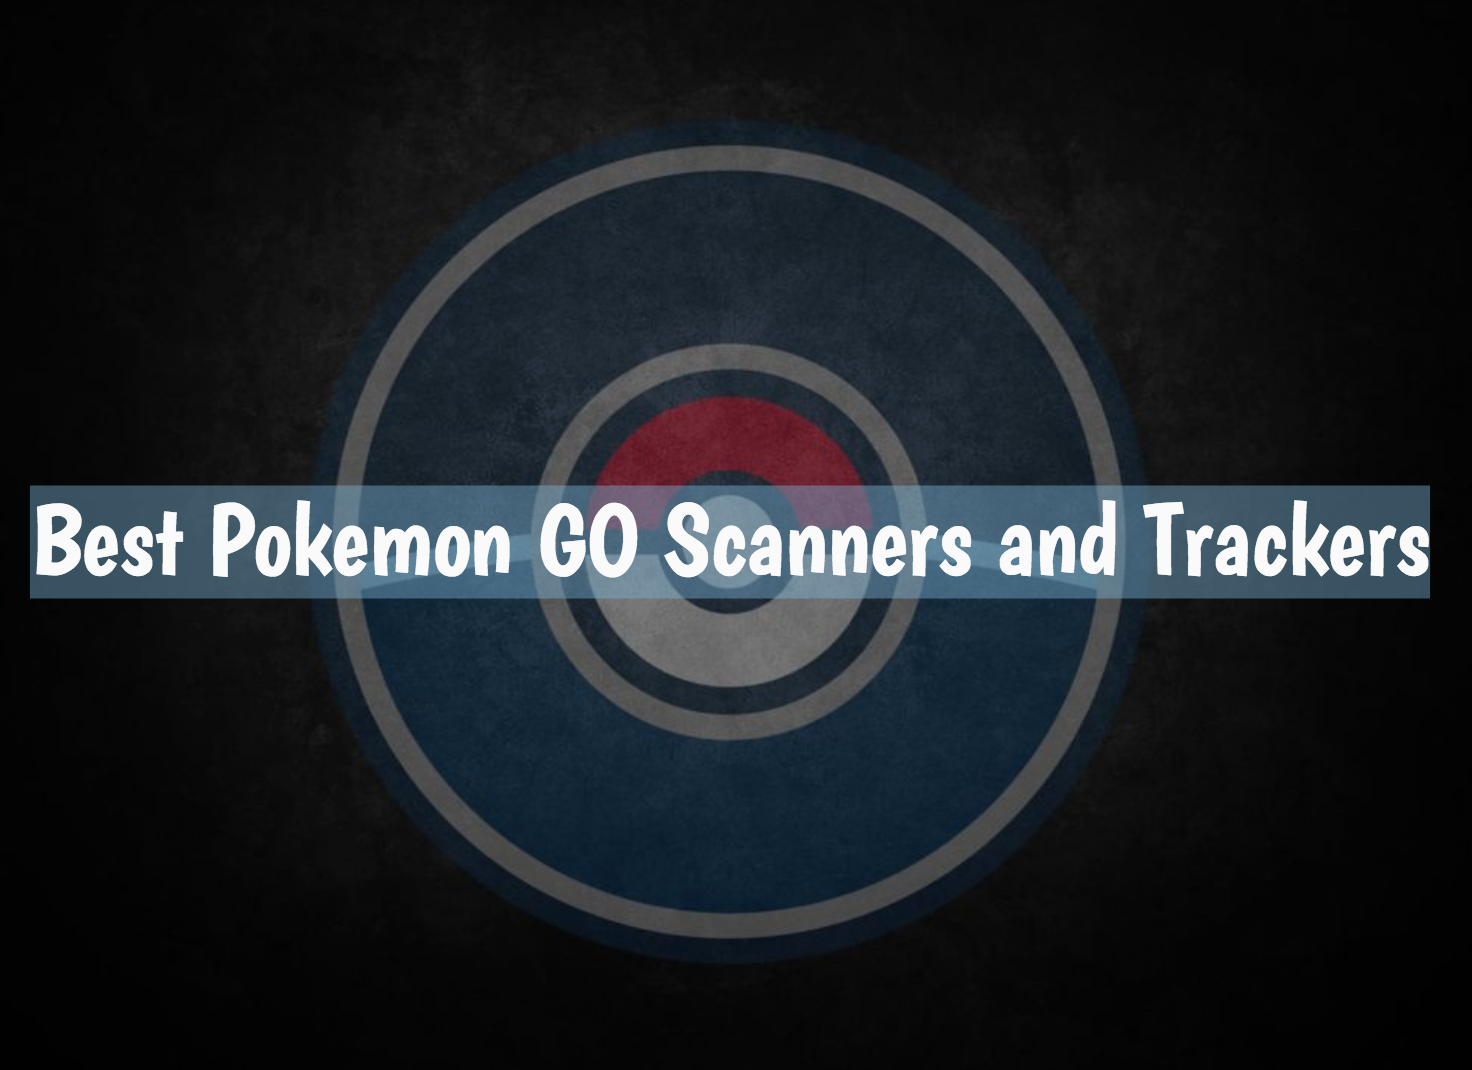 Pokemon GO Scanners and Trackers